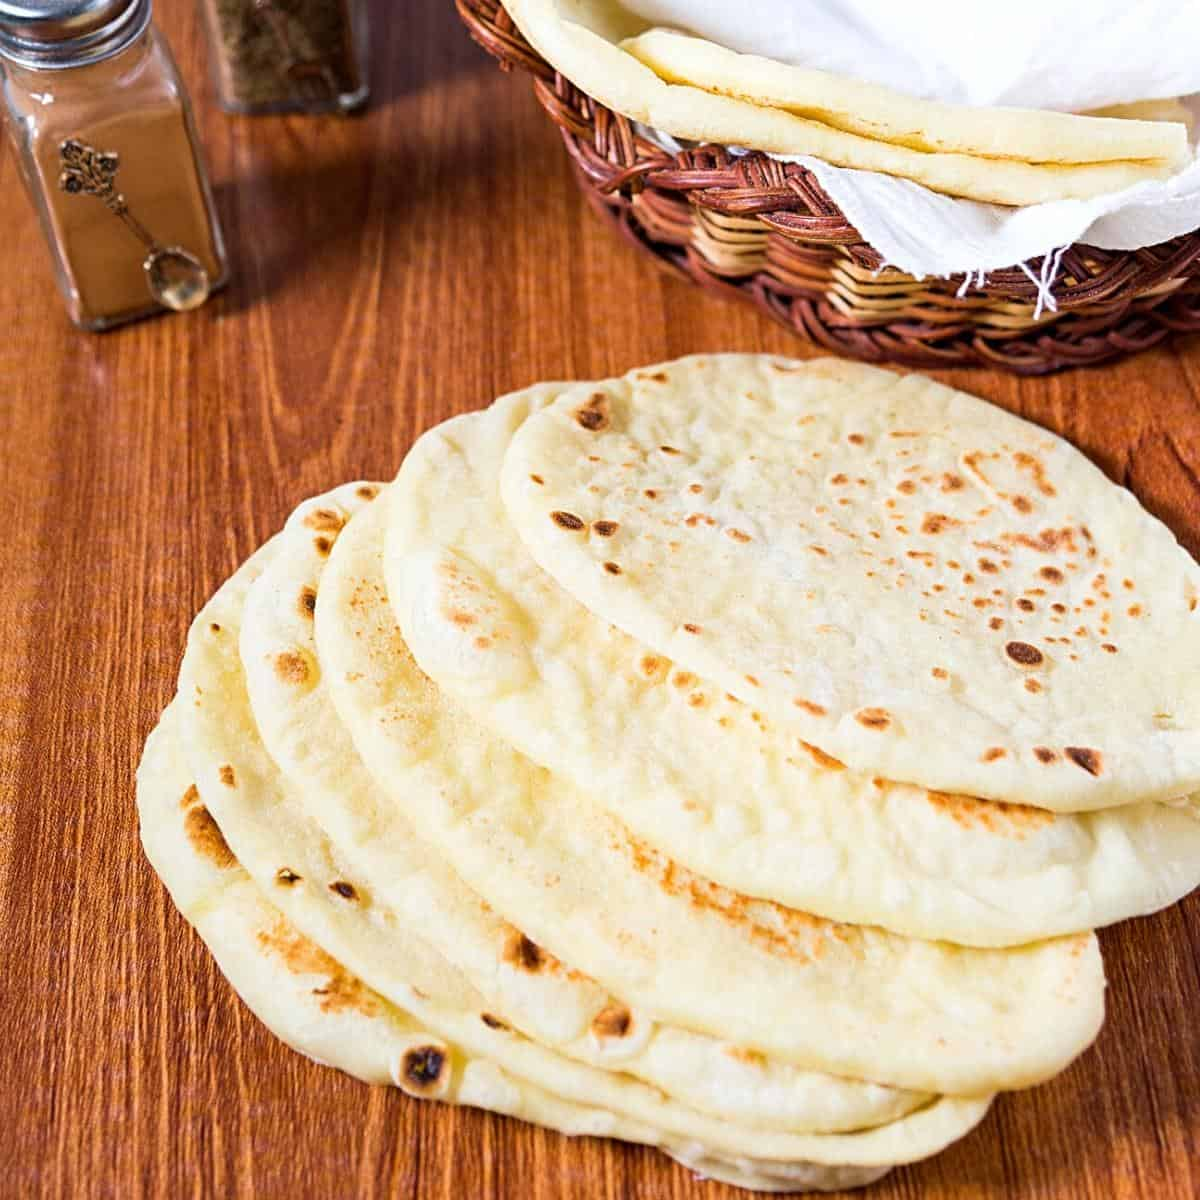 A stack of naan bread on a table.